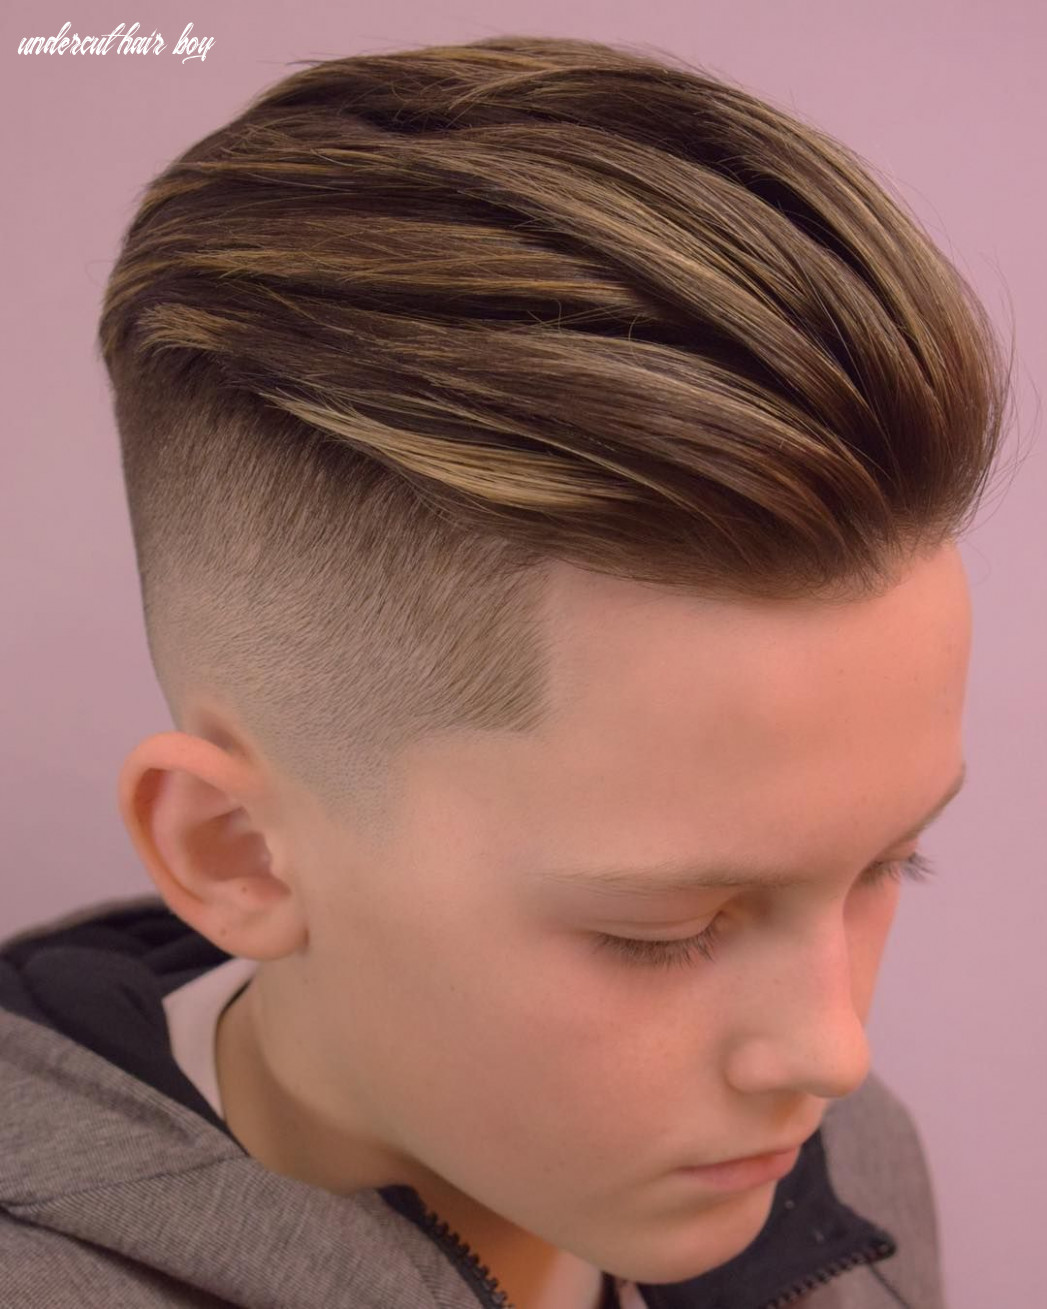 10 winsome textured hairstyles & haircuts for mens 10 | boy